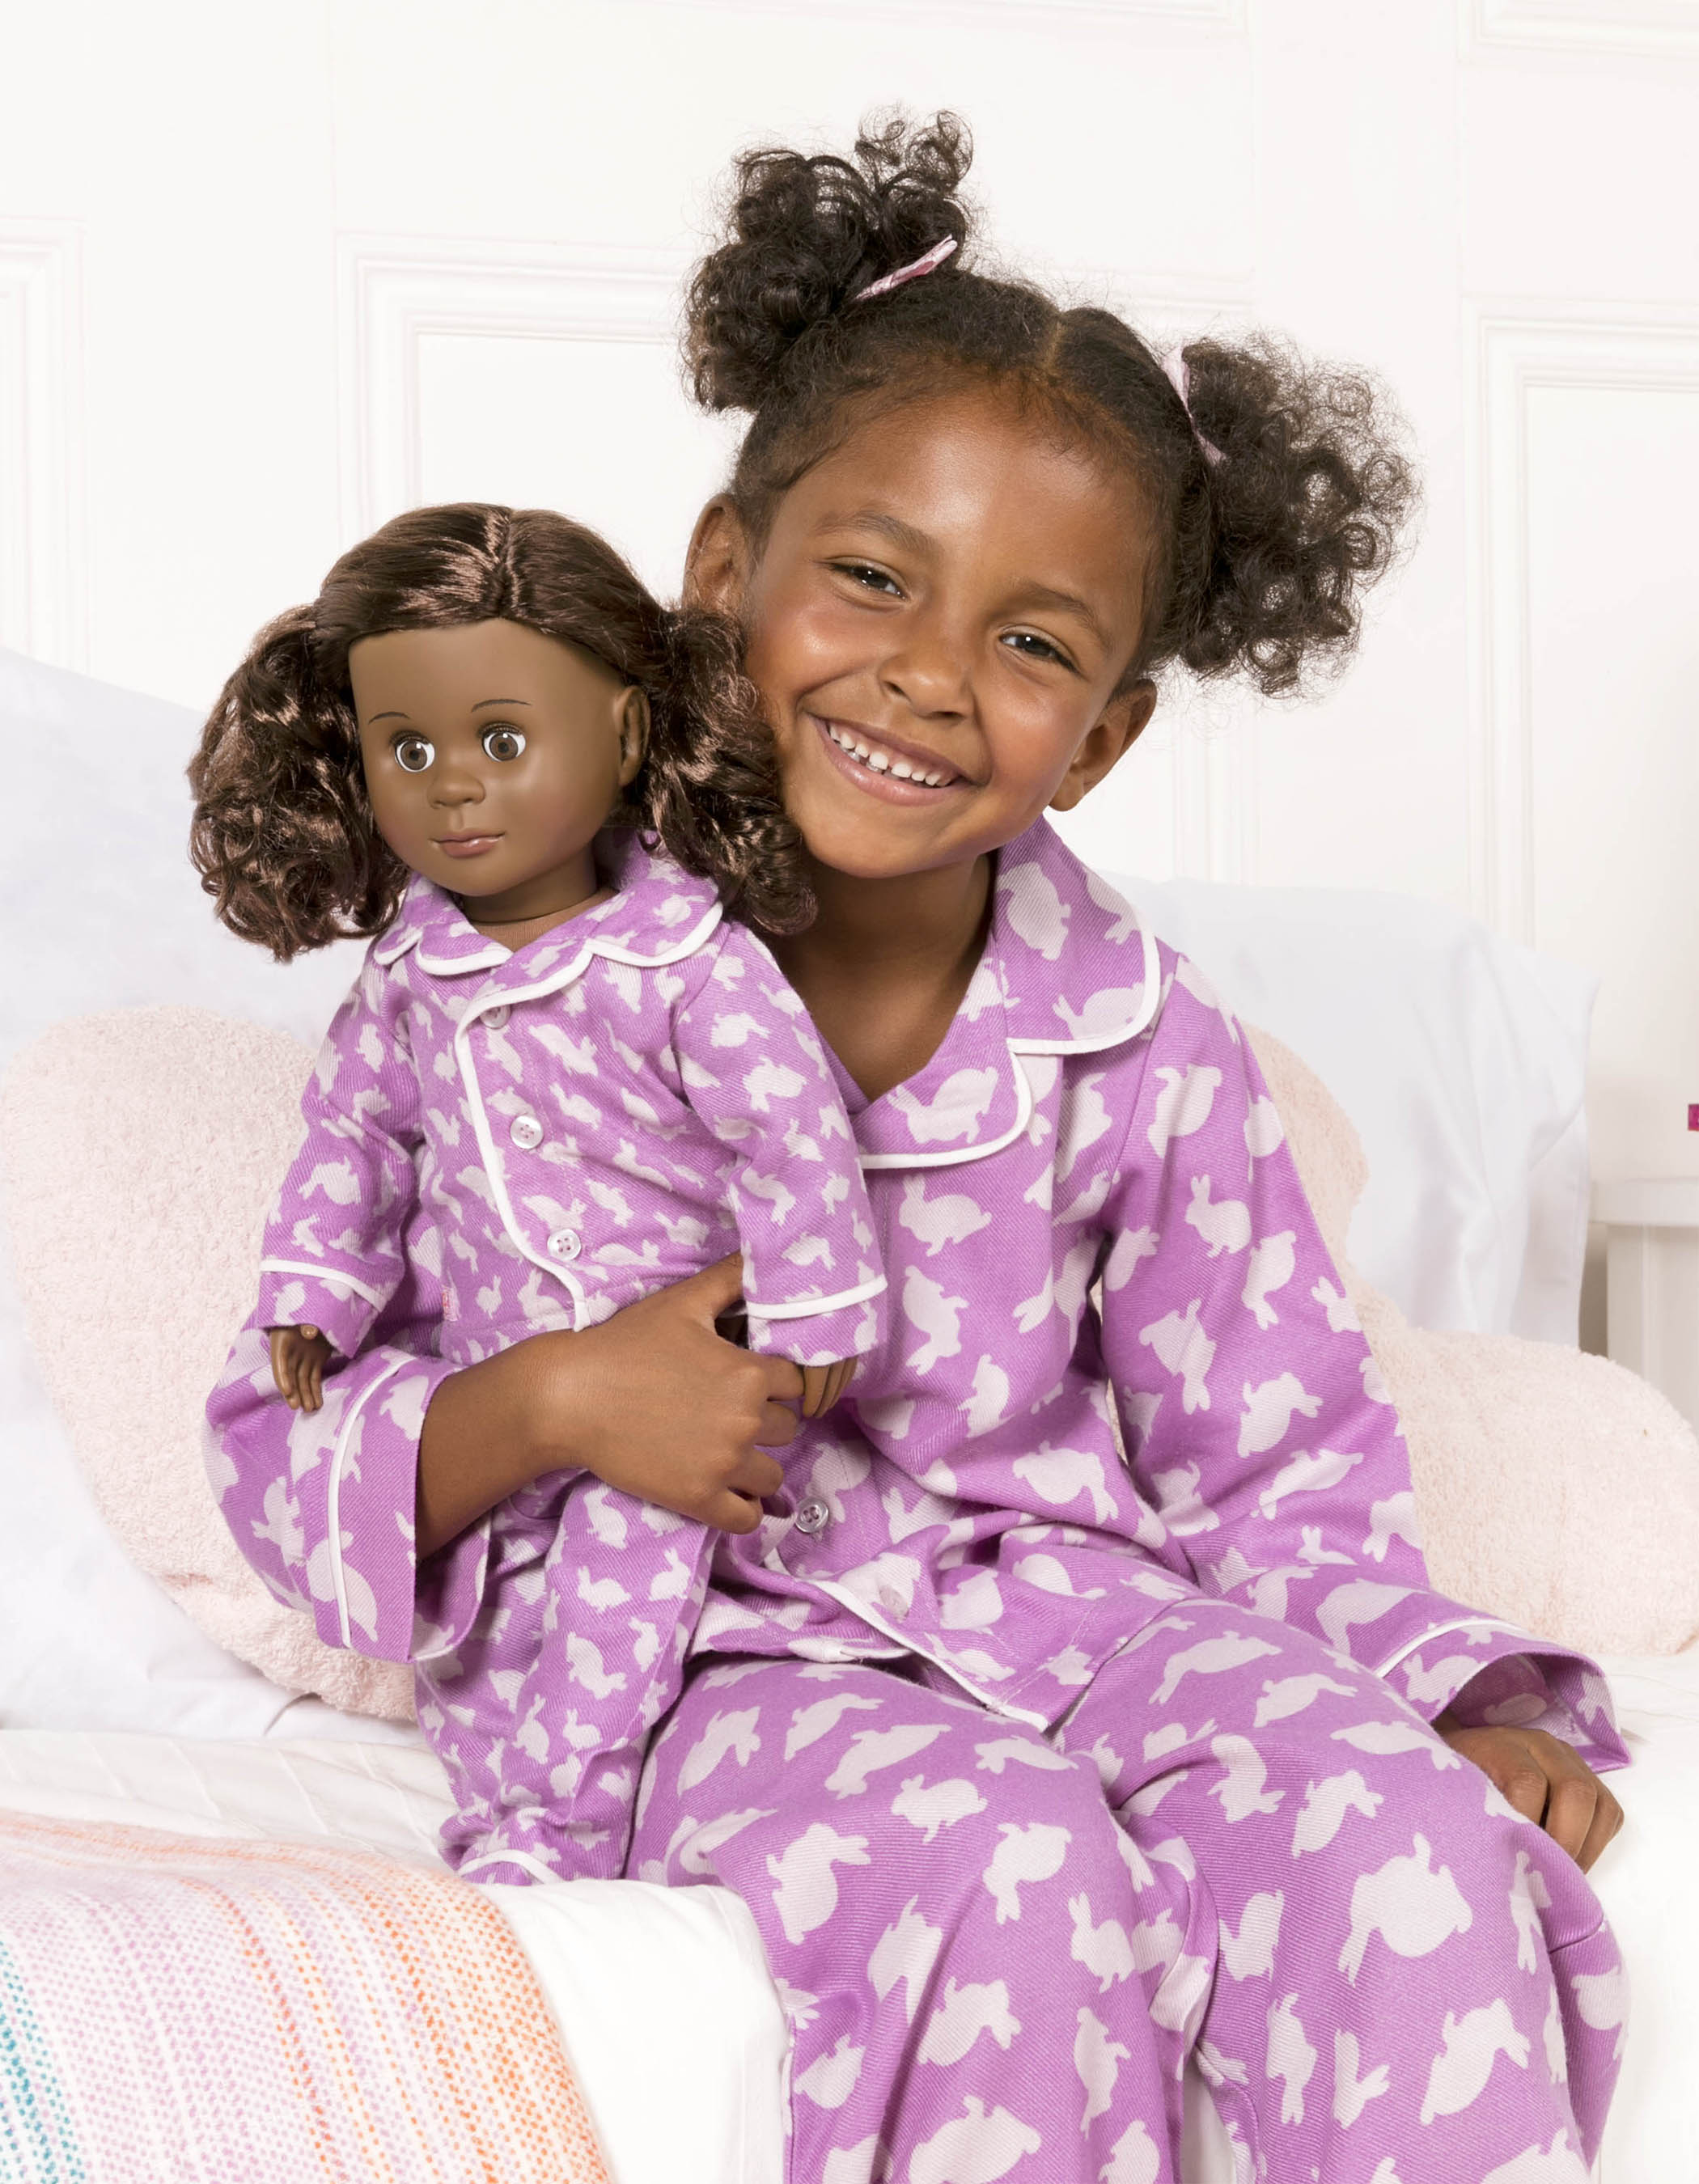 Me and You Bunny pajamas in macthing sizes for kids and dolls!